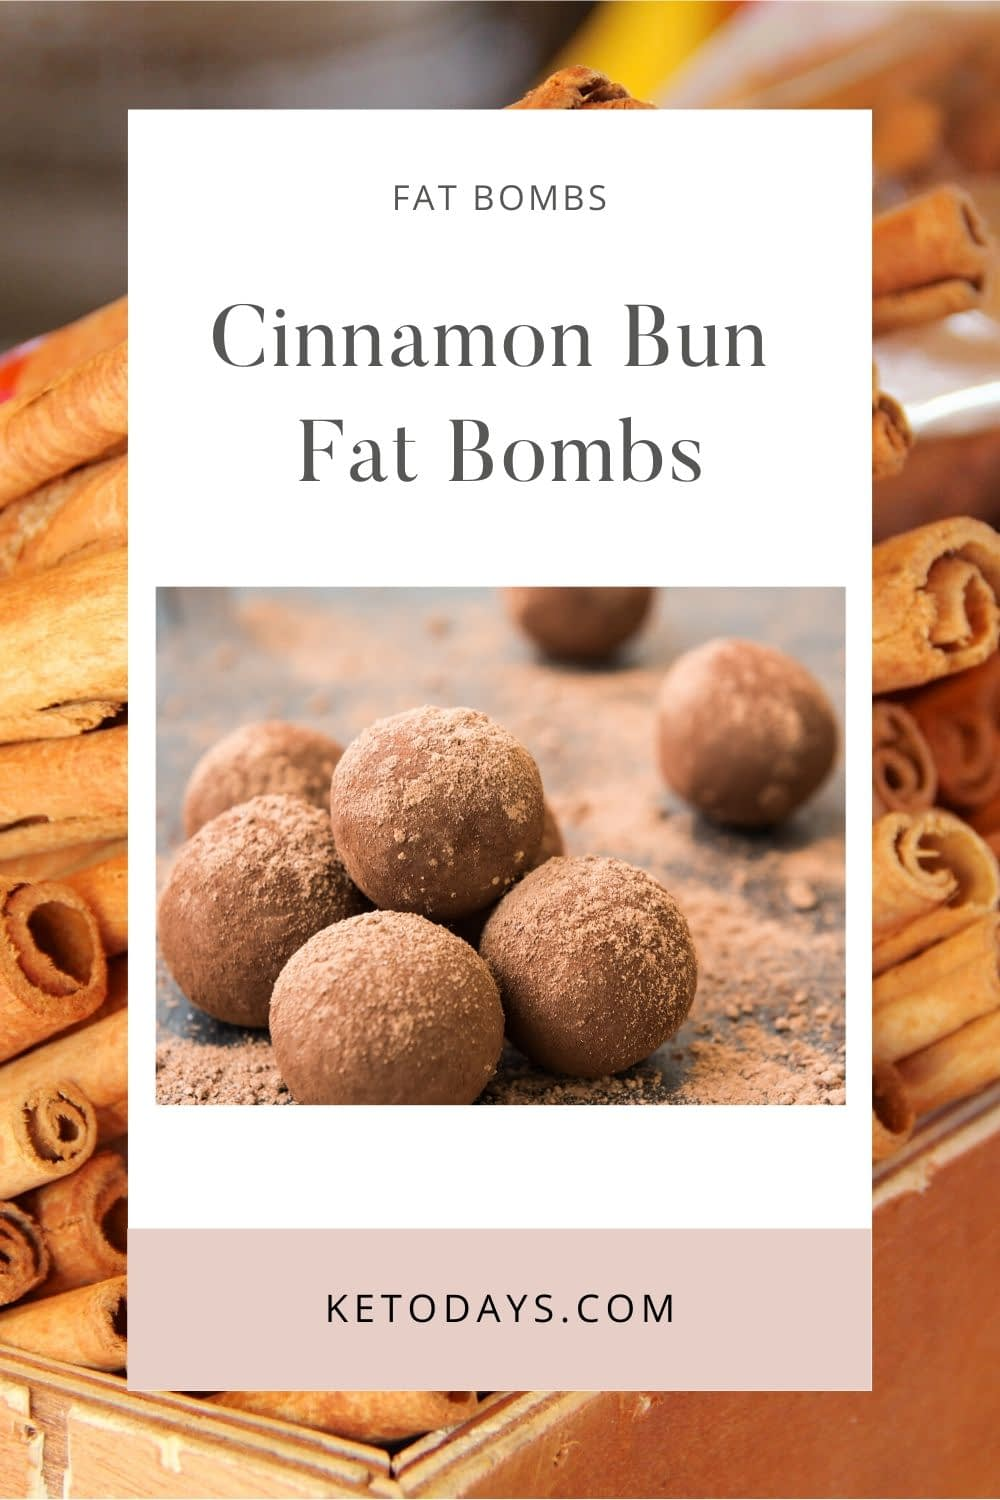 Keto fat bombs are small, bite-sized treats. They are generally made sweet with a keto sweetener like Swerve and have a high-fat content. Keto Fat bombs are often kept in the freezer or fridge and can be made as balls, mini-muffins, candies and so forth.